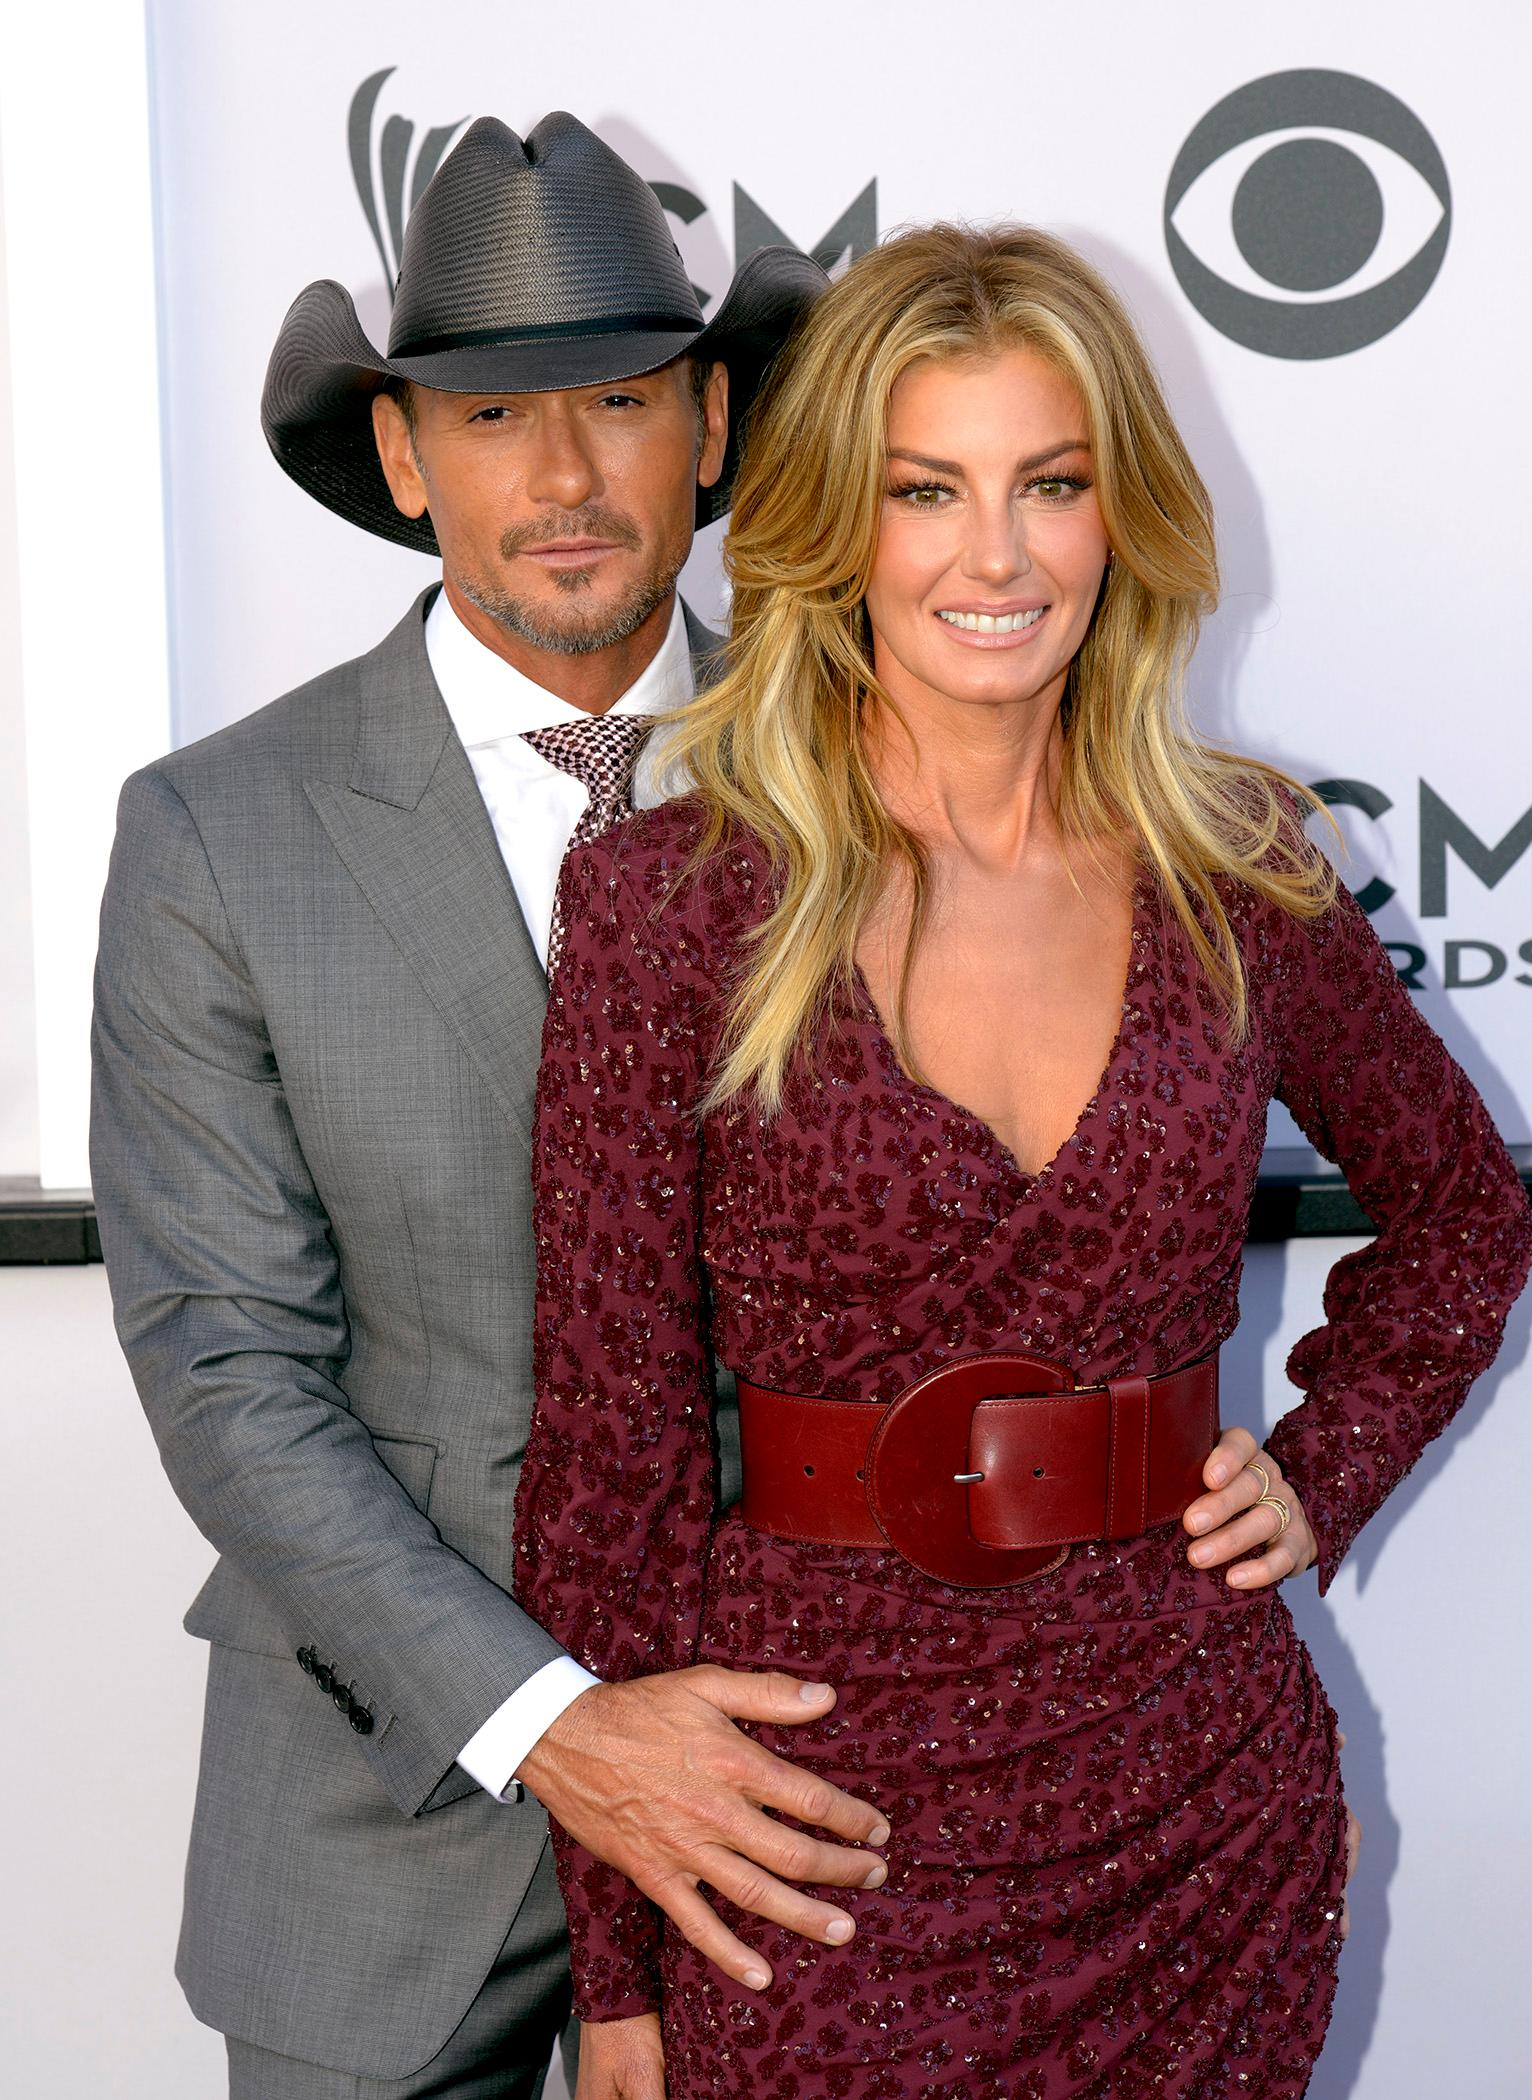 Tim McGraw and Faith Hill walk Academy of Country Music Awards red carpet together at T-Mobile Arena. Sunday, April 2, 2017. (Glenn Pinkerton/ Las Vegas News Bureau)